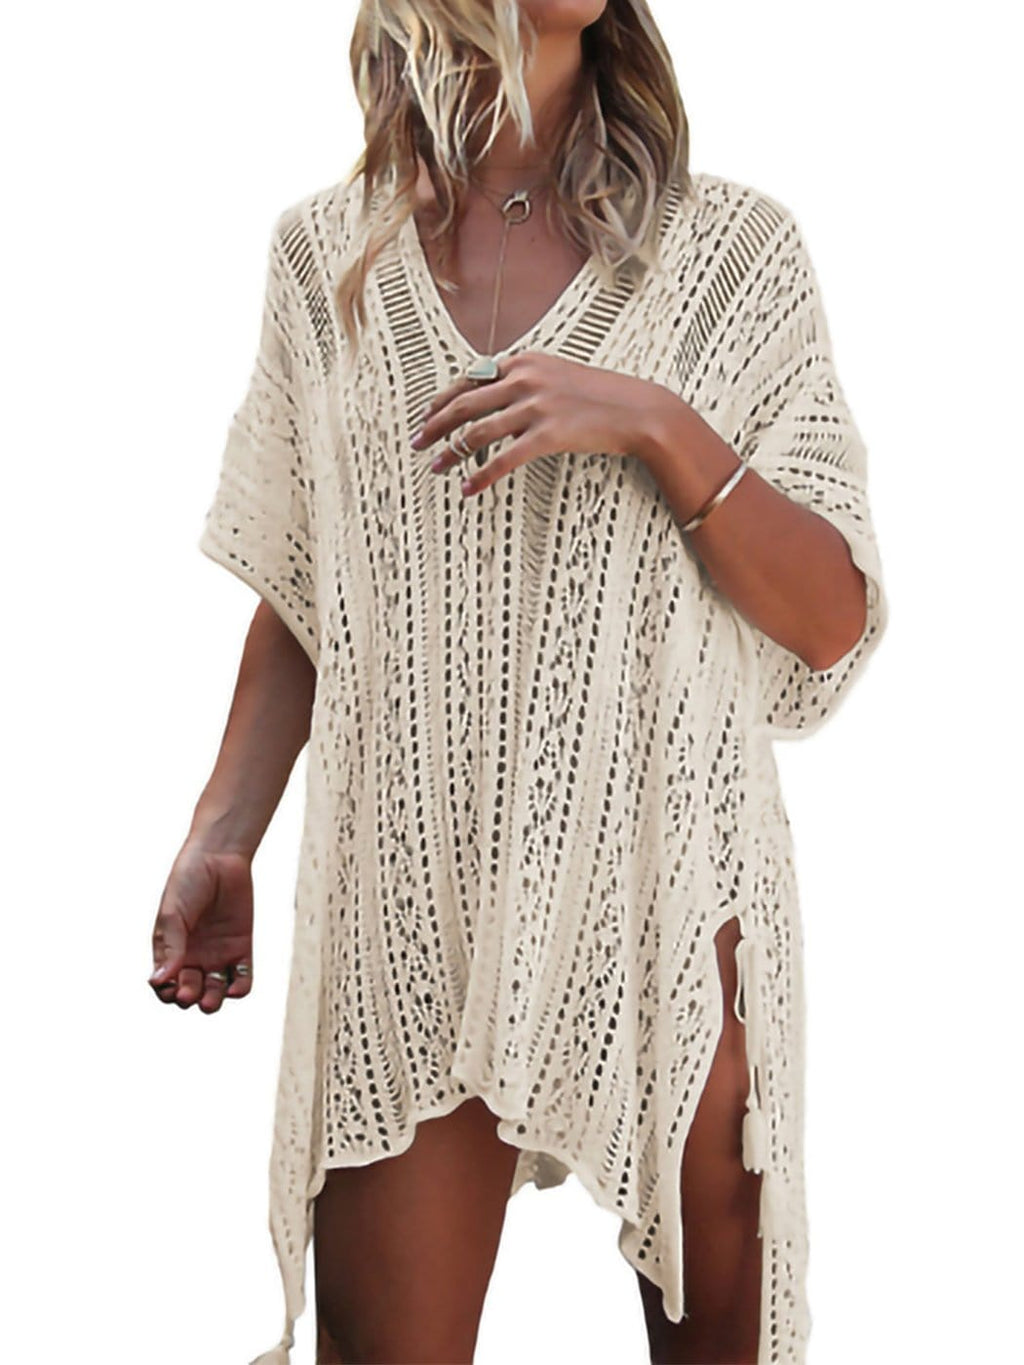 Boho Flair Crochet Sheer Coverup